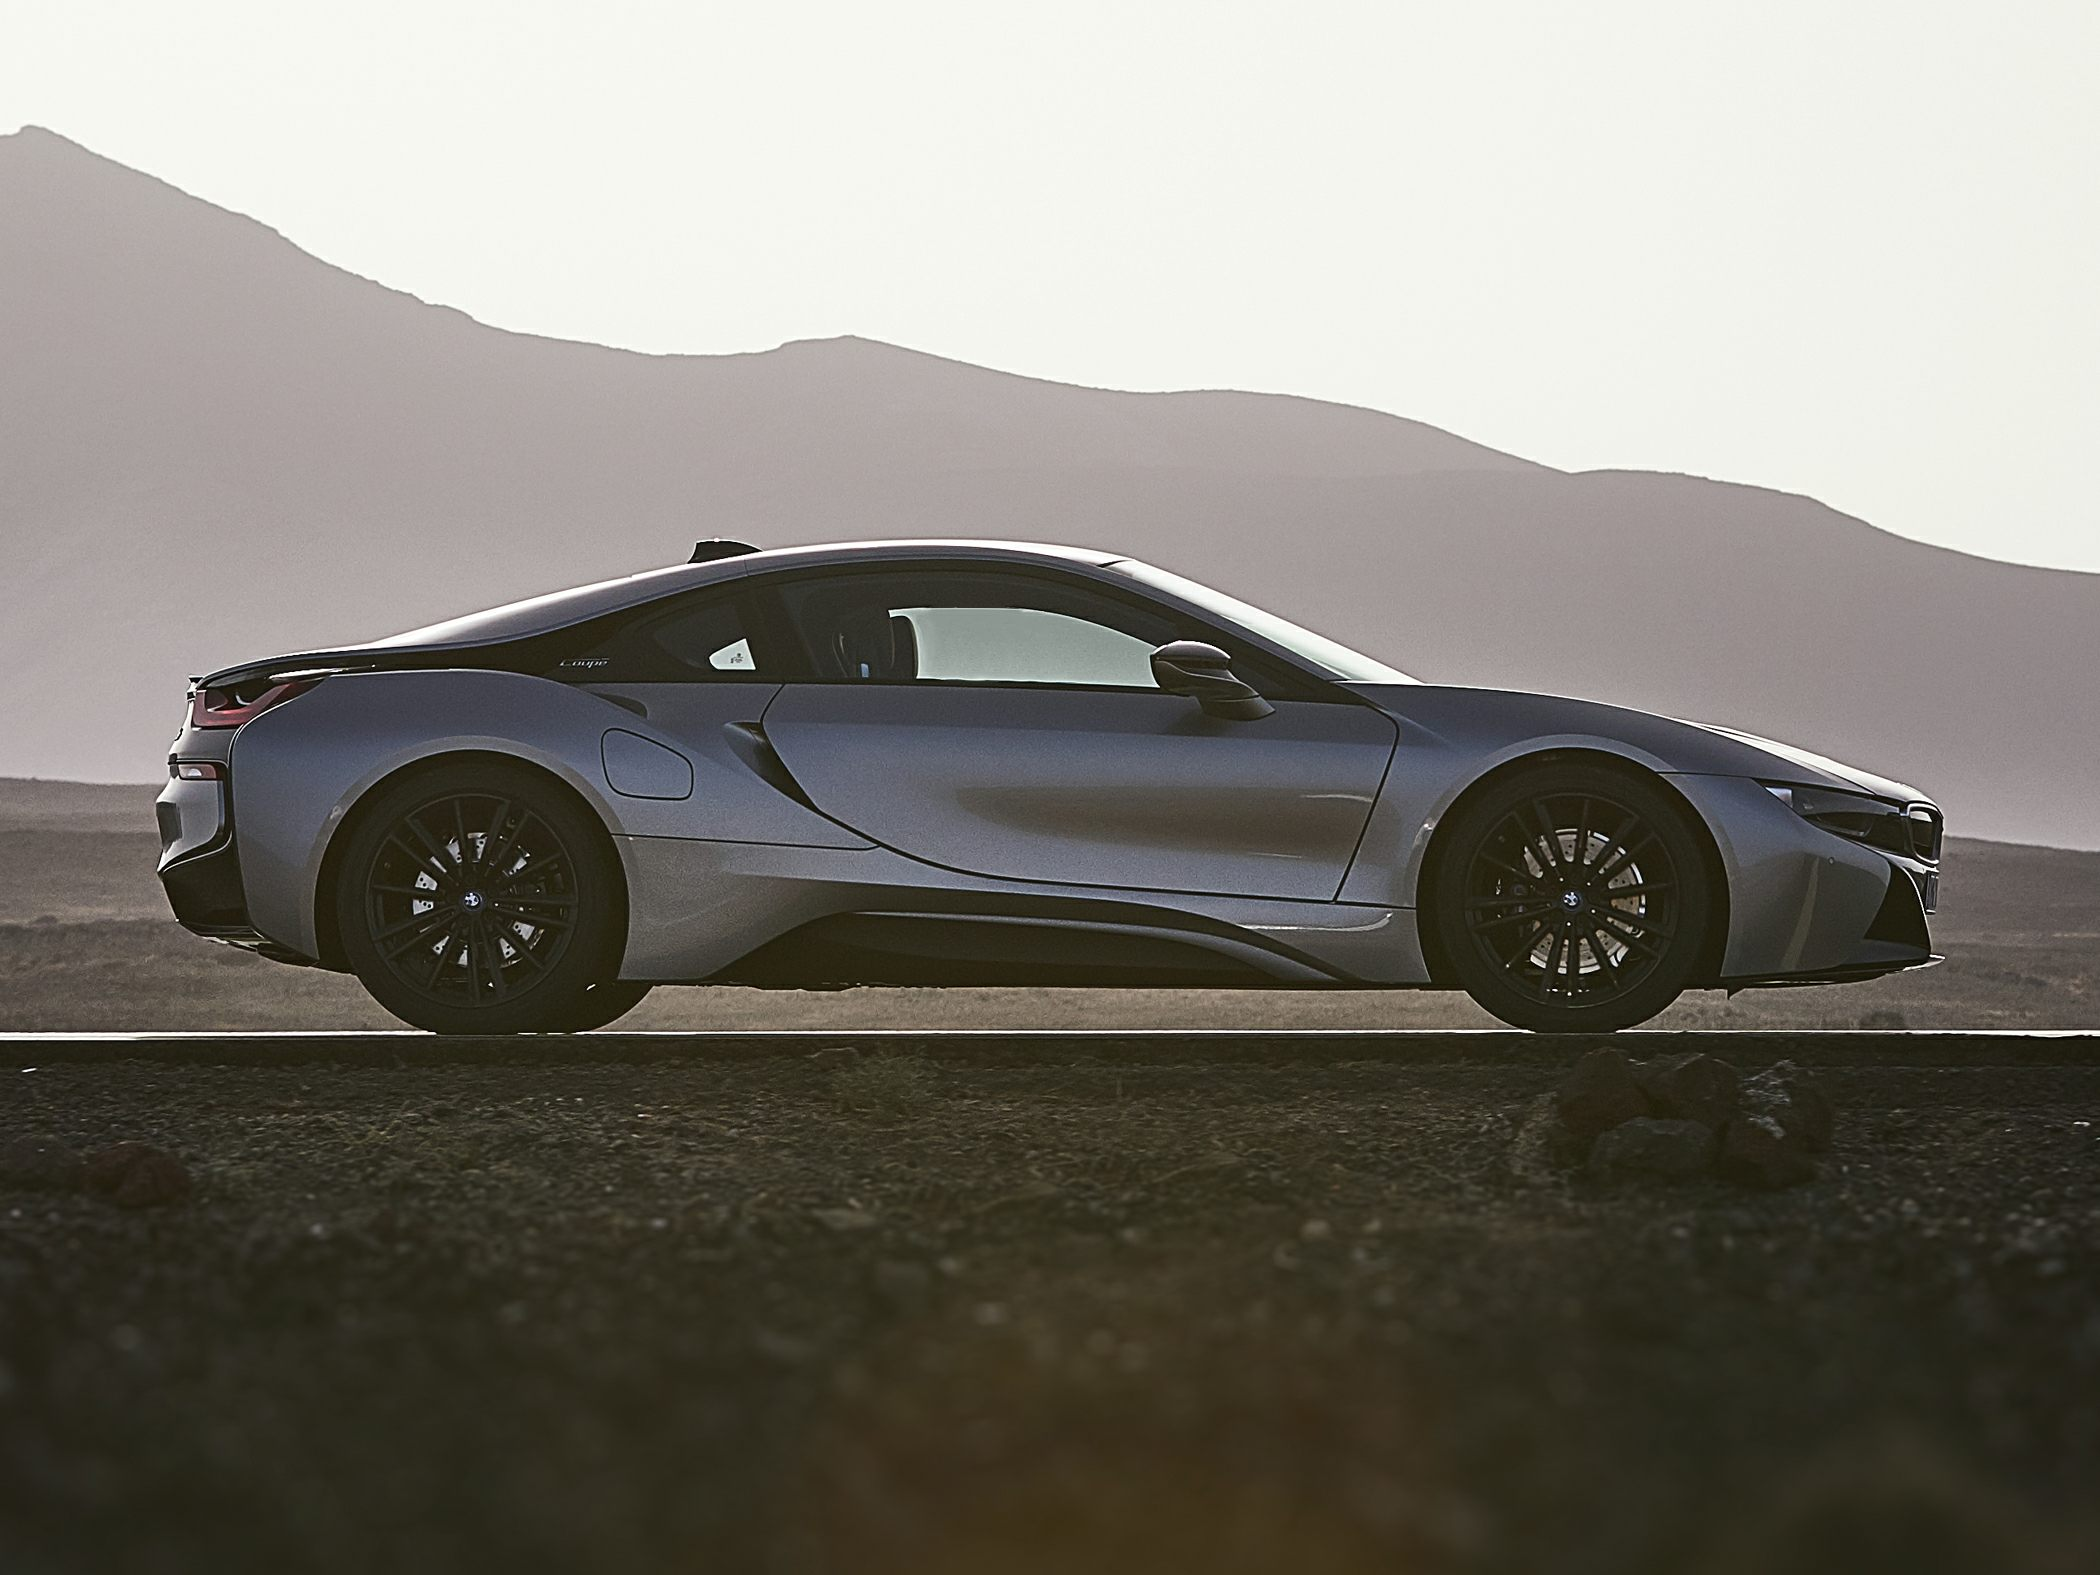 Bmw I8 Lease Deals >> See 2019 BMW i8 Color Options - CarsDirect